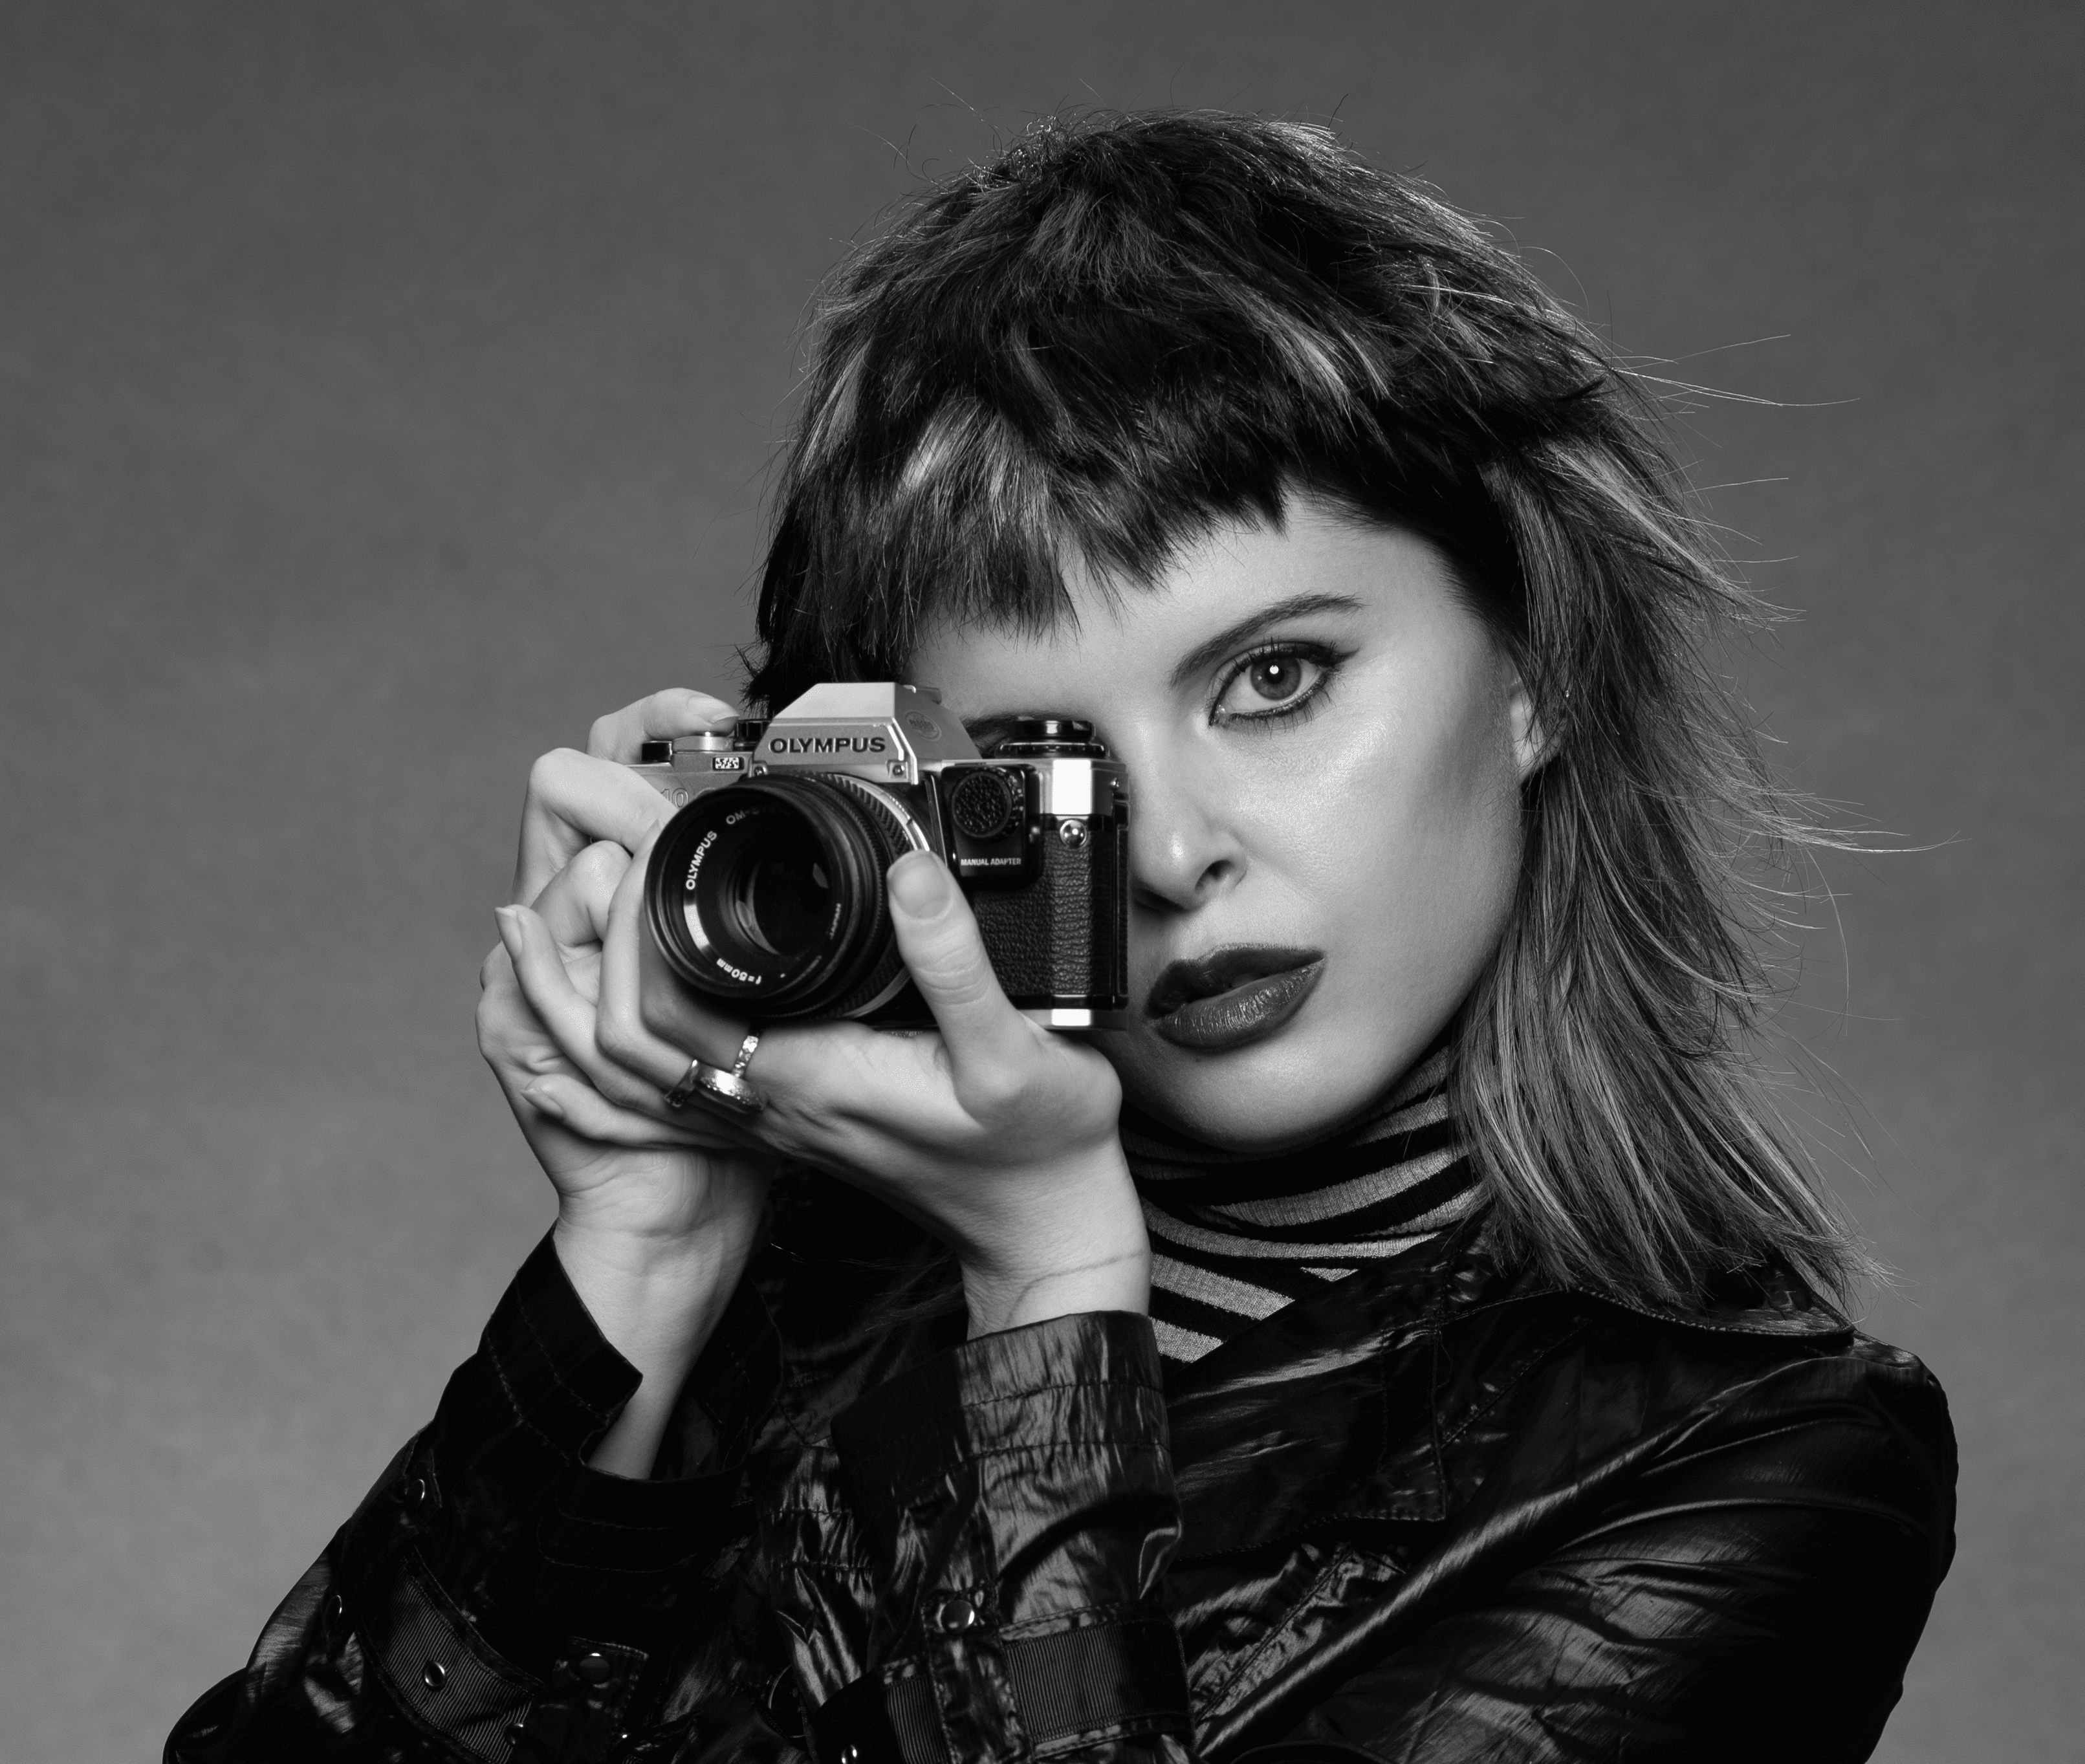 Agostina Cerullo photographed by Jimmy Lee - Underground blog